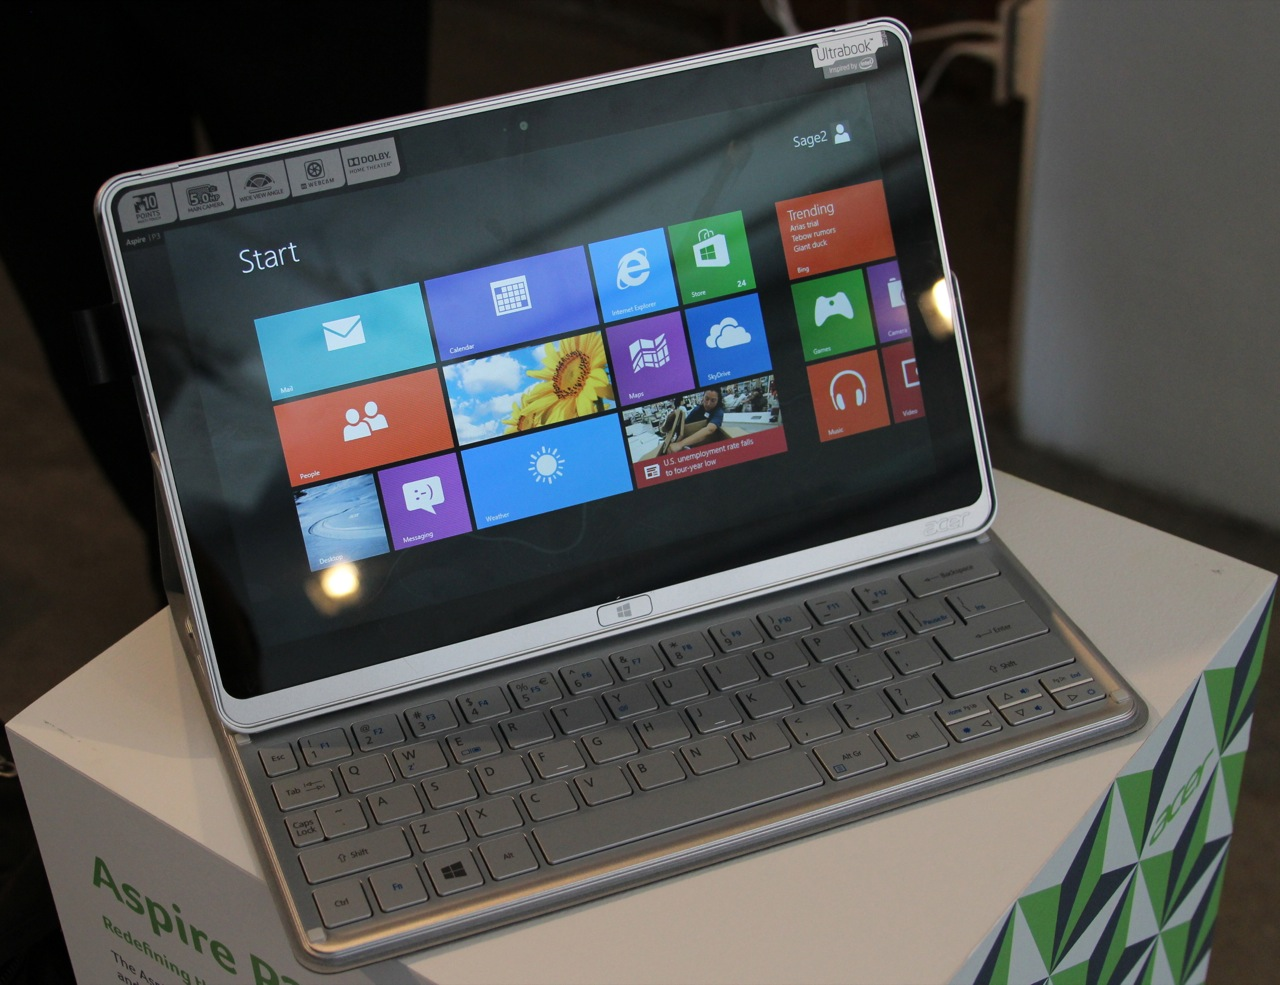 The Acer Aspire P3 Ultrabook, which is less an Ultrabook than a thin tablet in a keyboard dock.